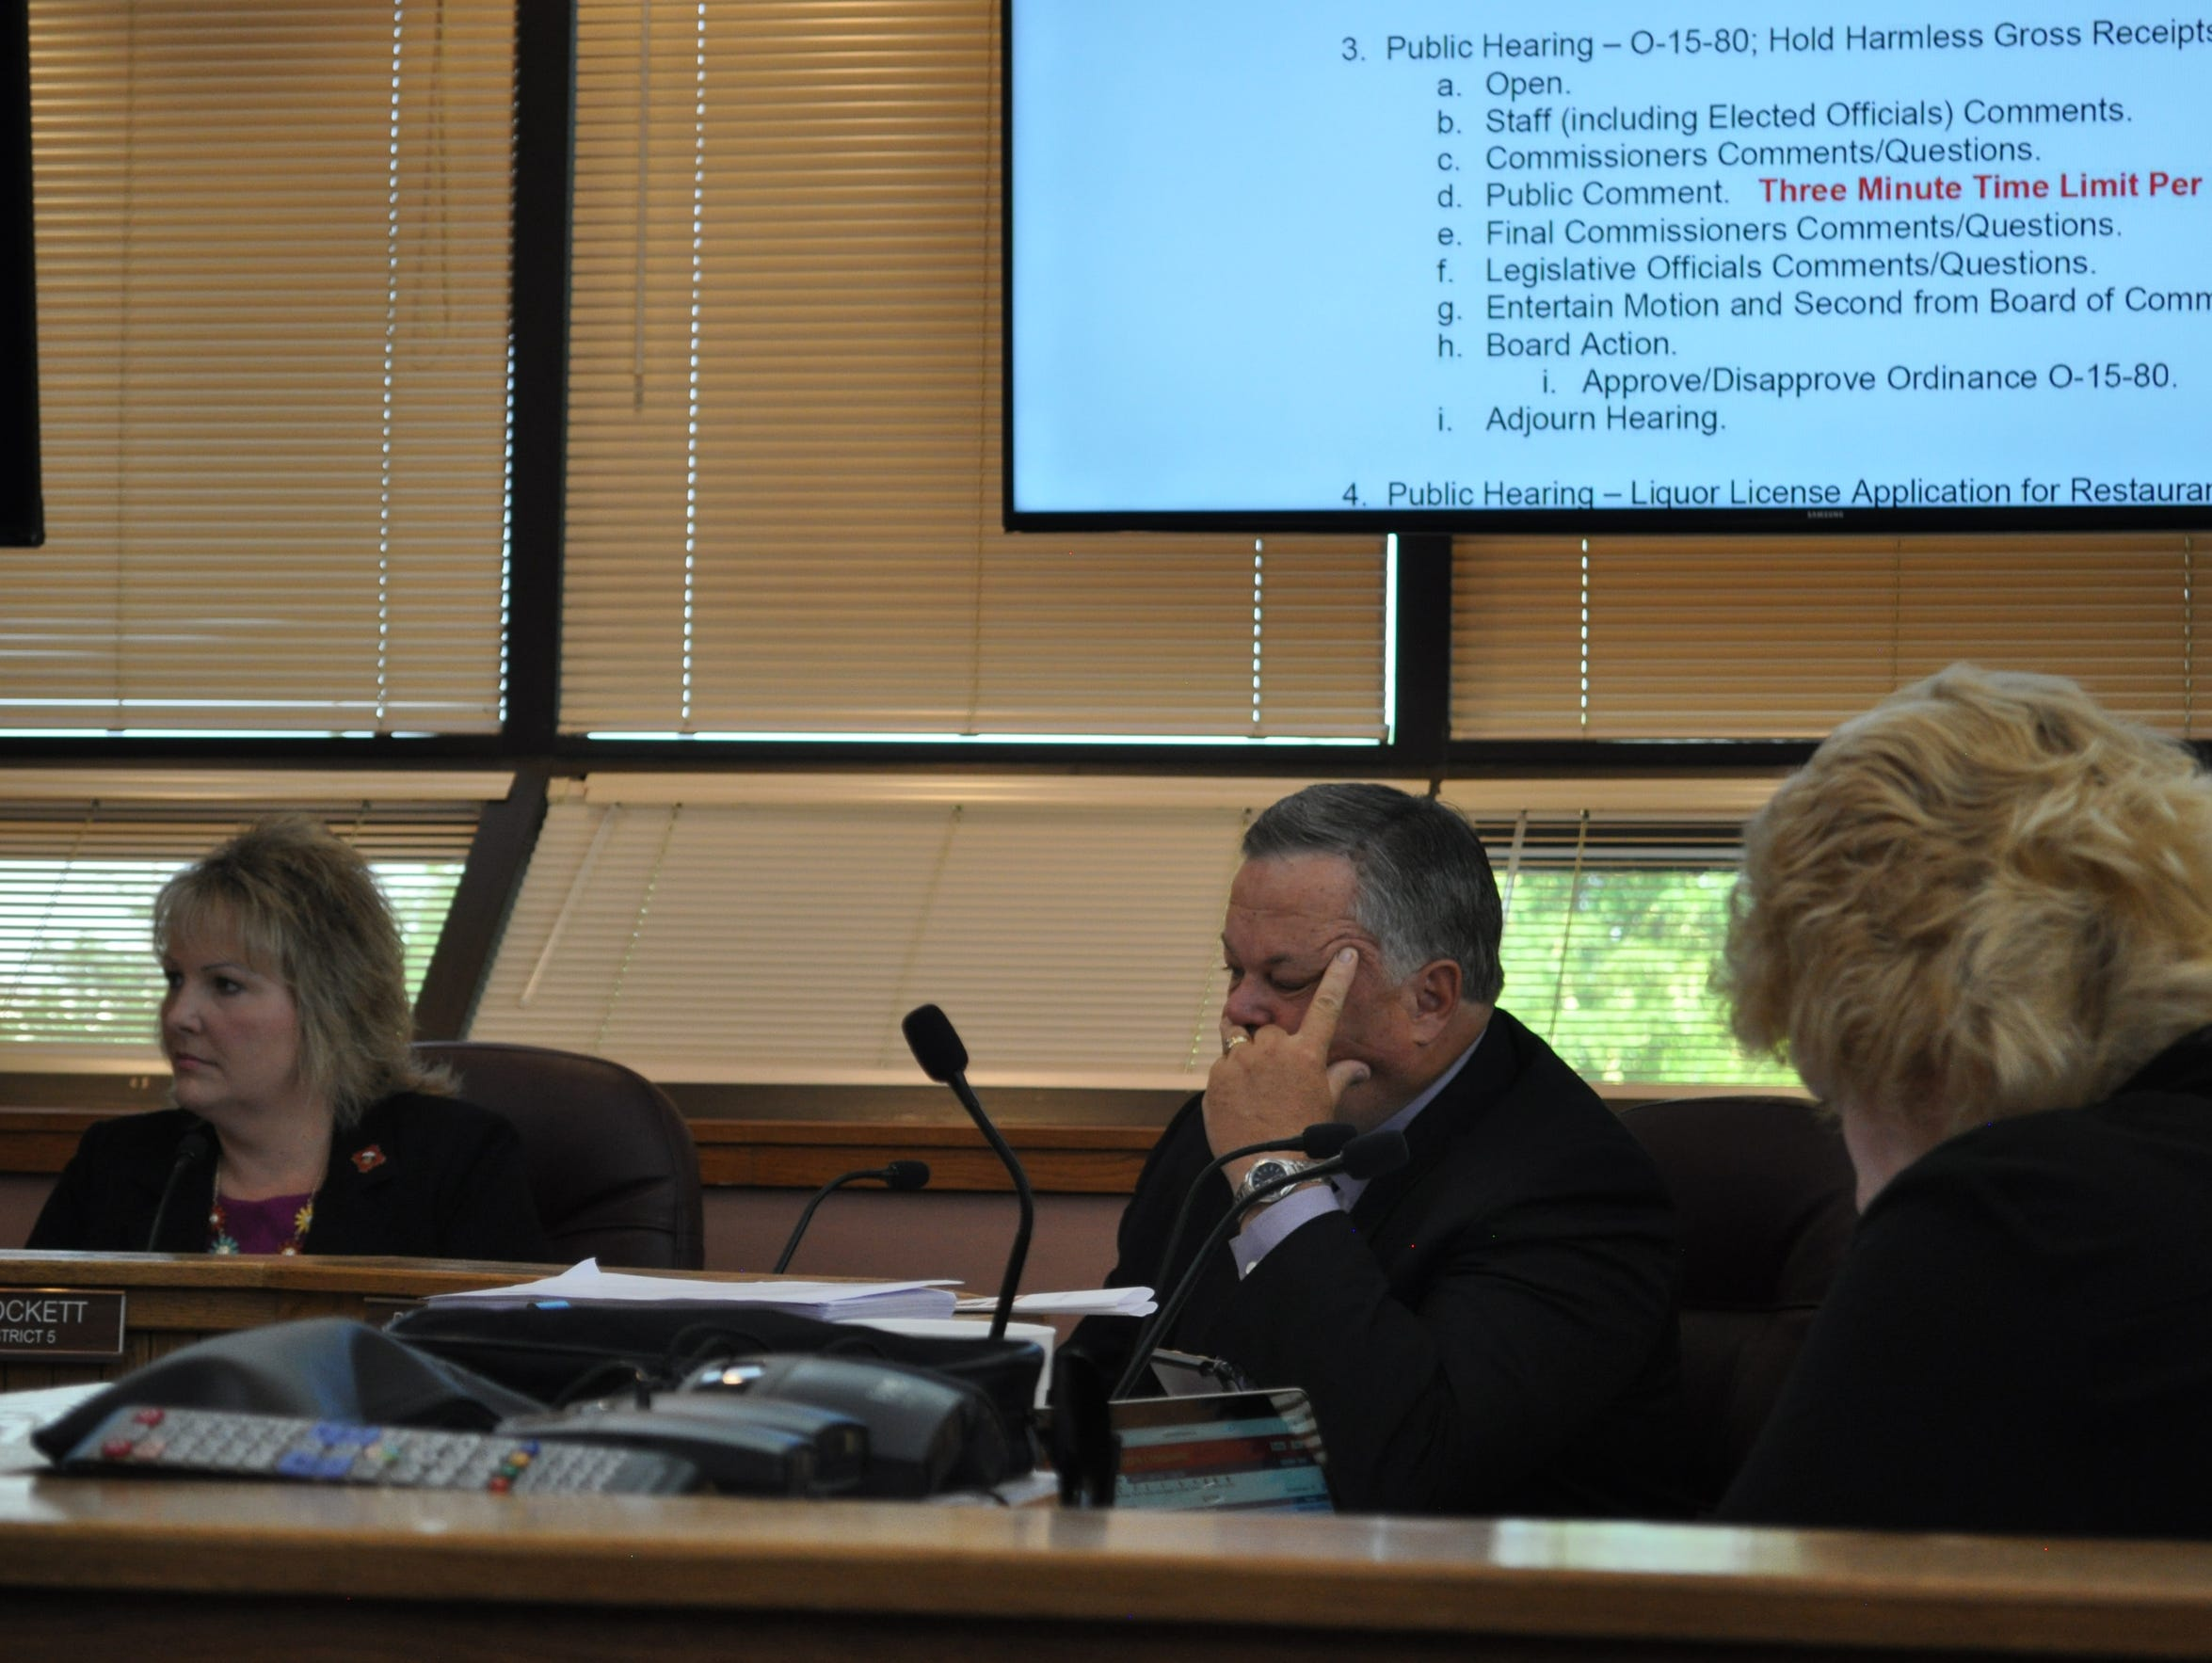 Commissioners consider public comment on Gross Receipts